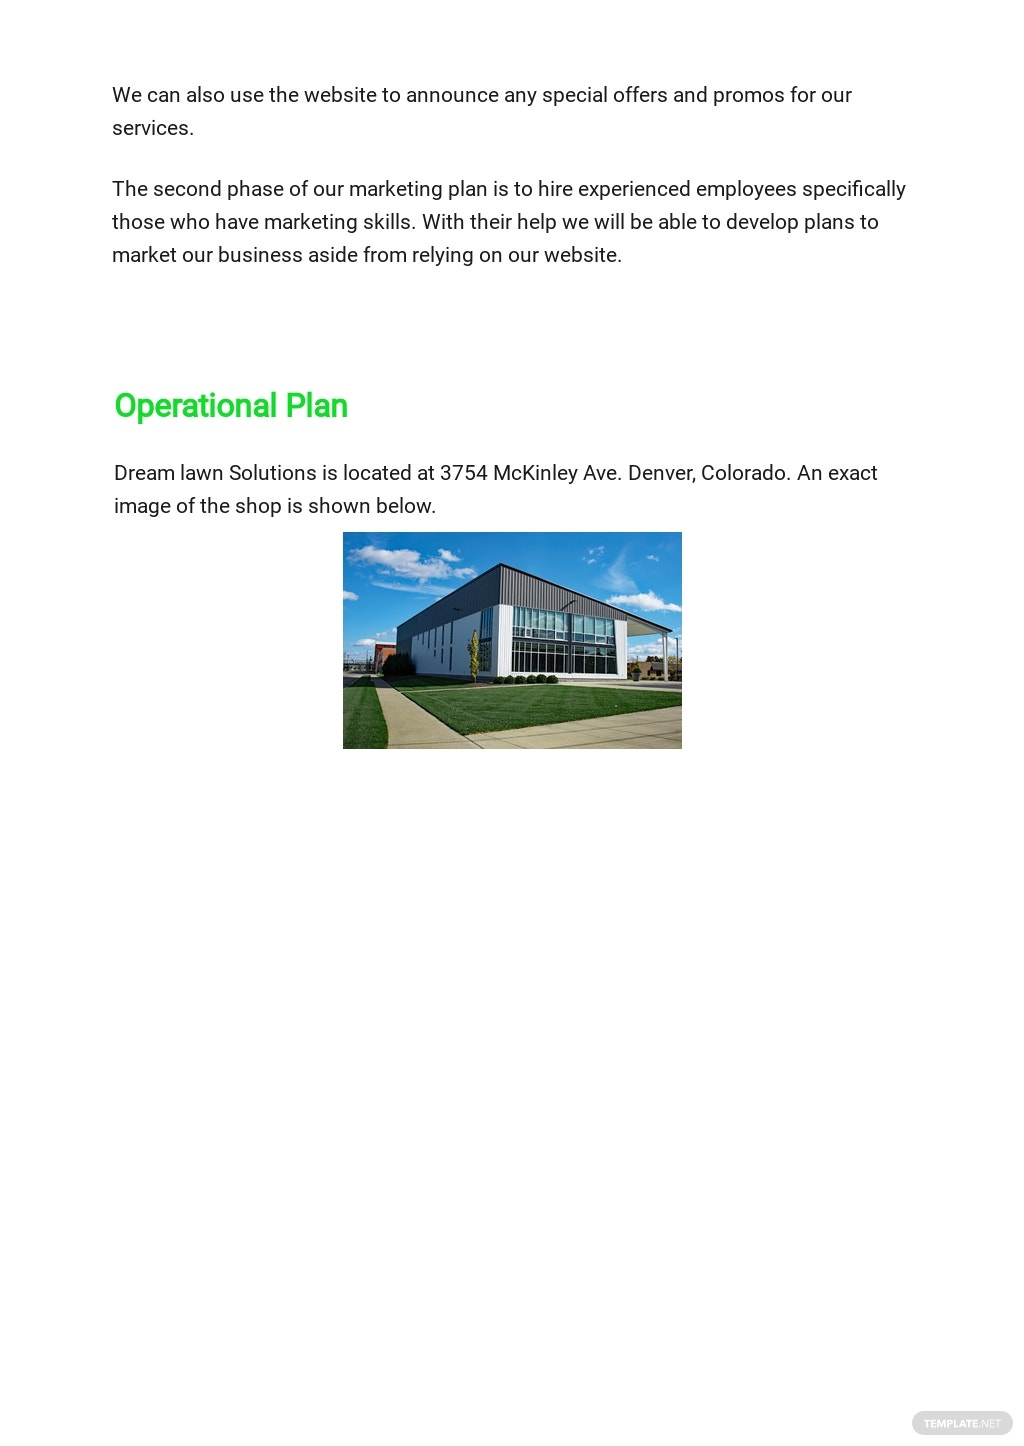 Lawn Care Business Plan Template [Free PDF] - Google Docs, Word, Apple Pages, PDF